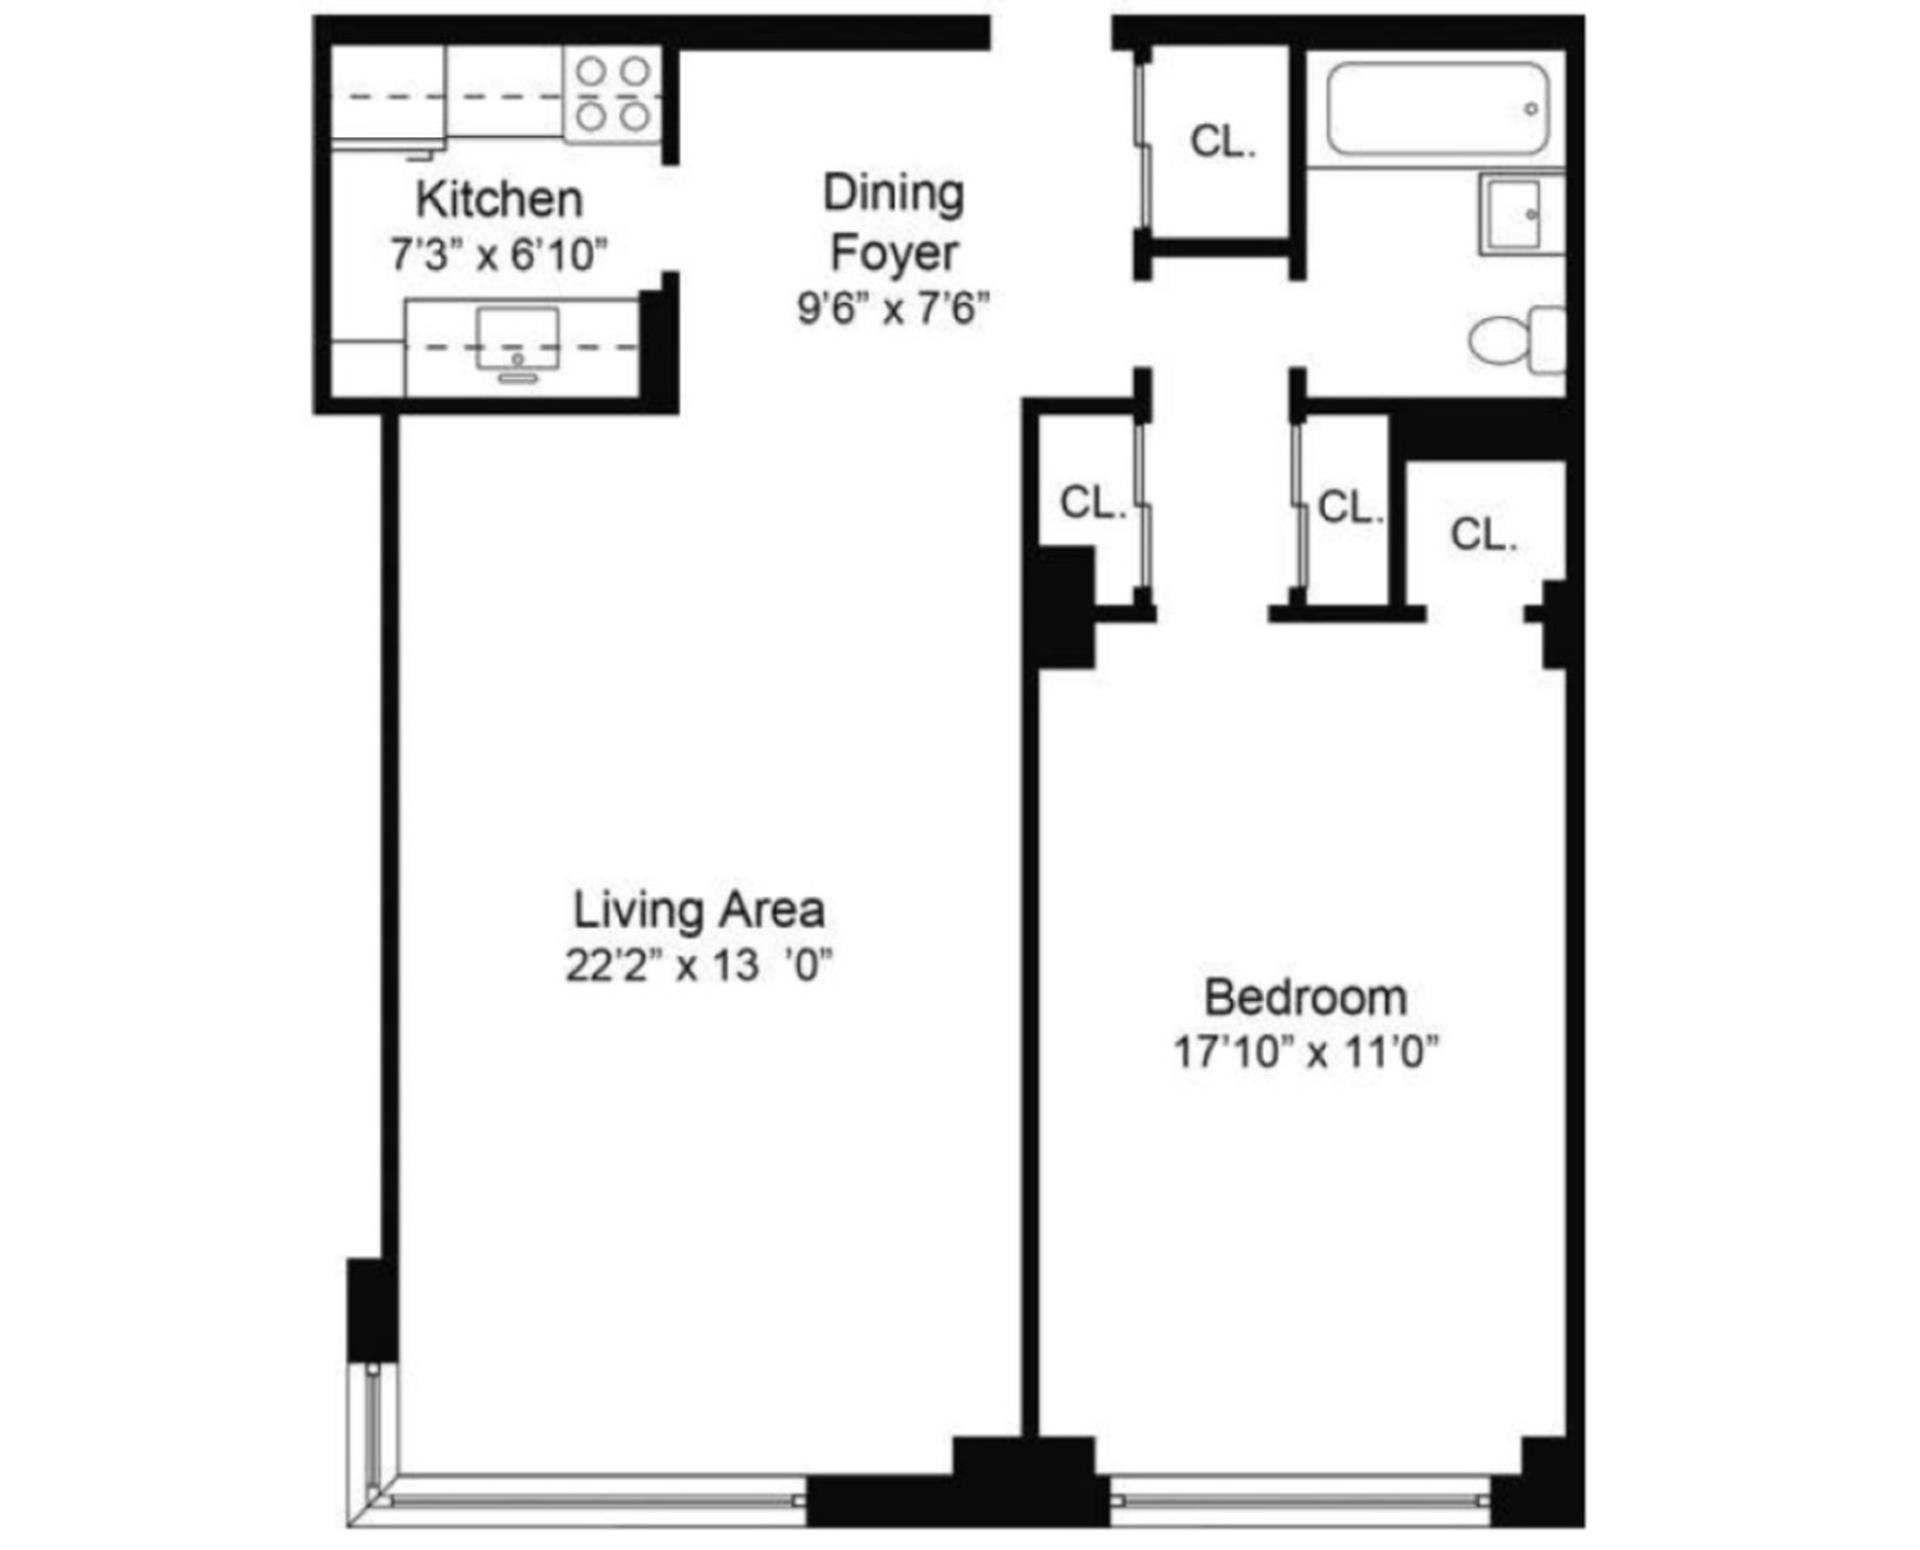 Floor plan of 55 East End Avenue, 16E - Upper East Side, New York